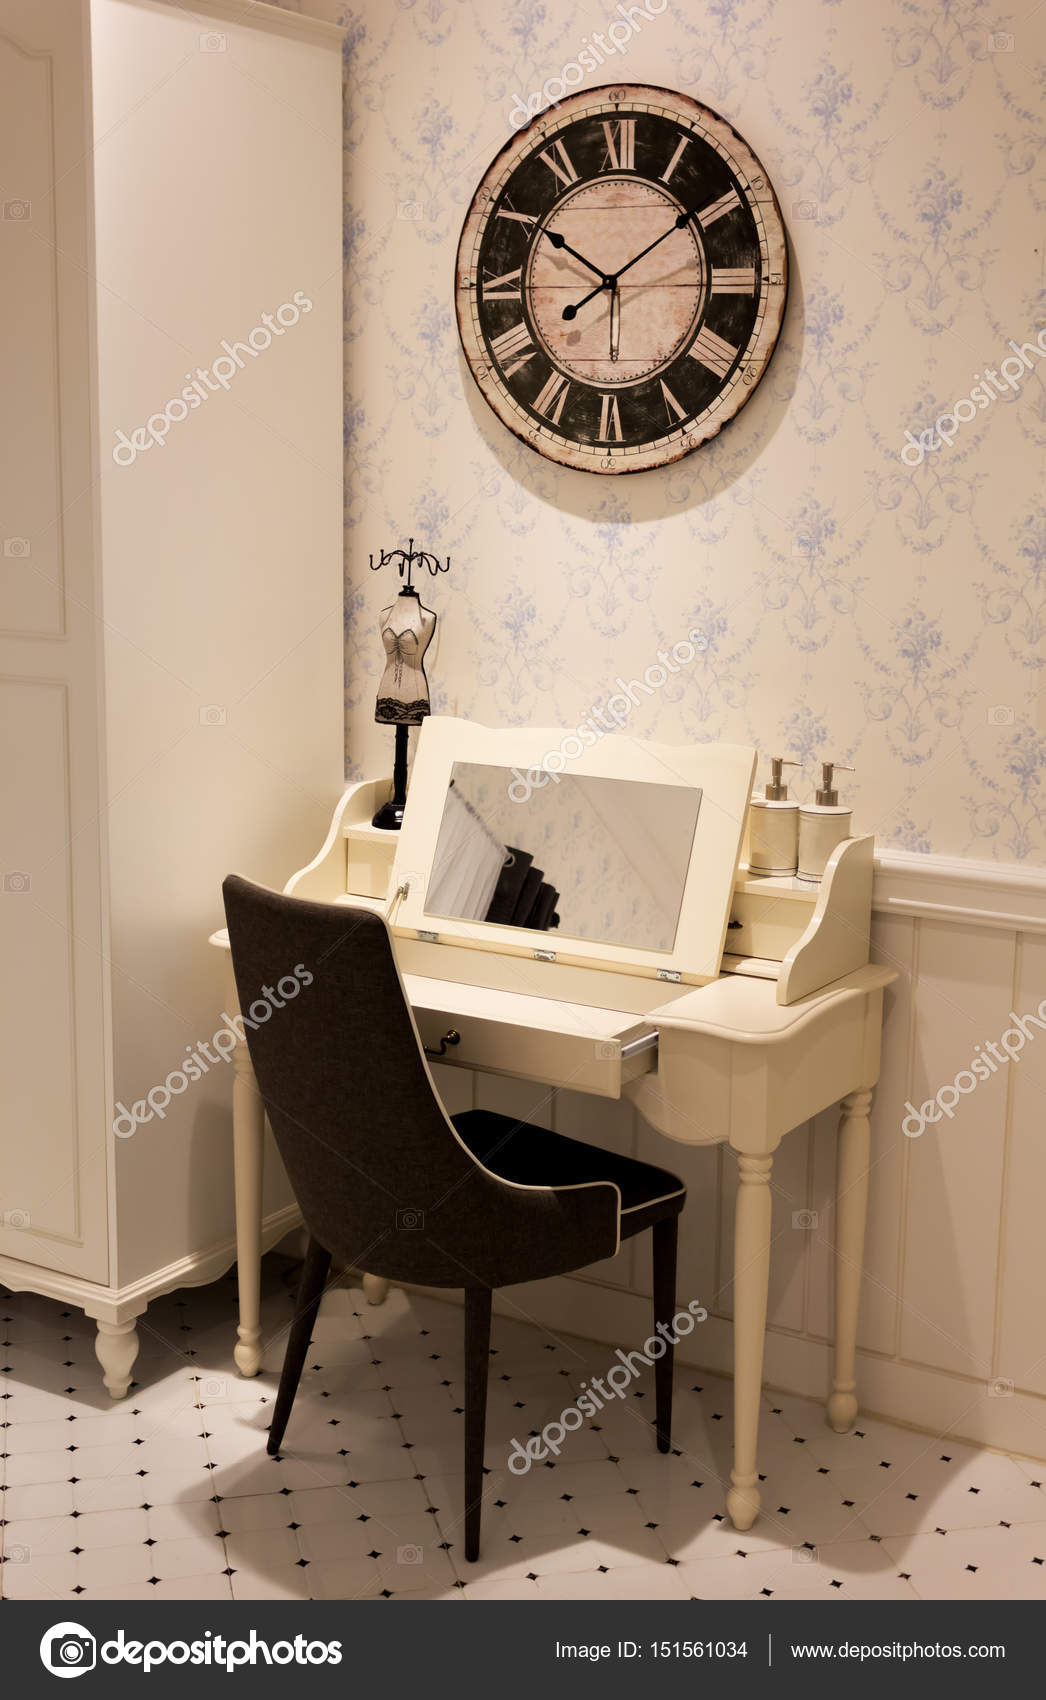 Corner Dressing Room Dressing Table Vanity Corner For Small Space In Room Vintage Design Interior Stock Photo C Princeoflove 151561034